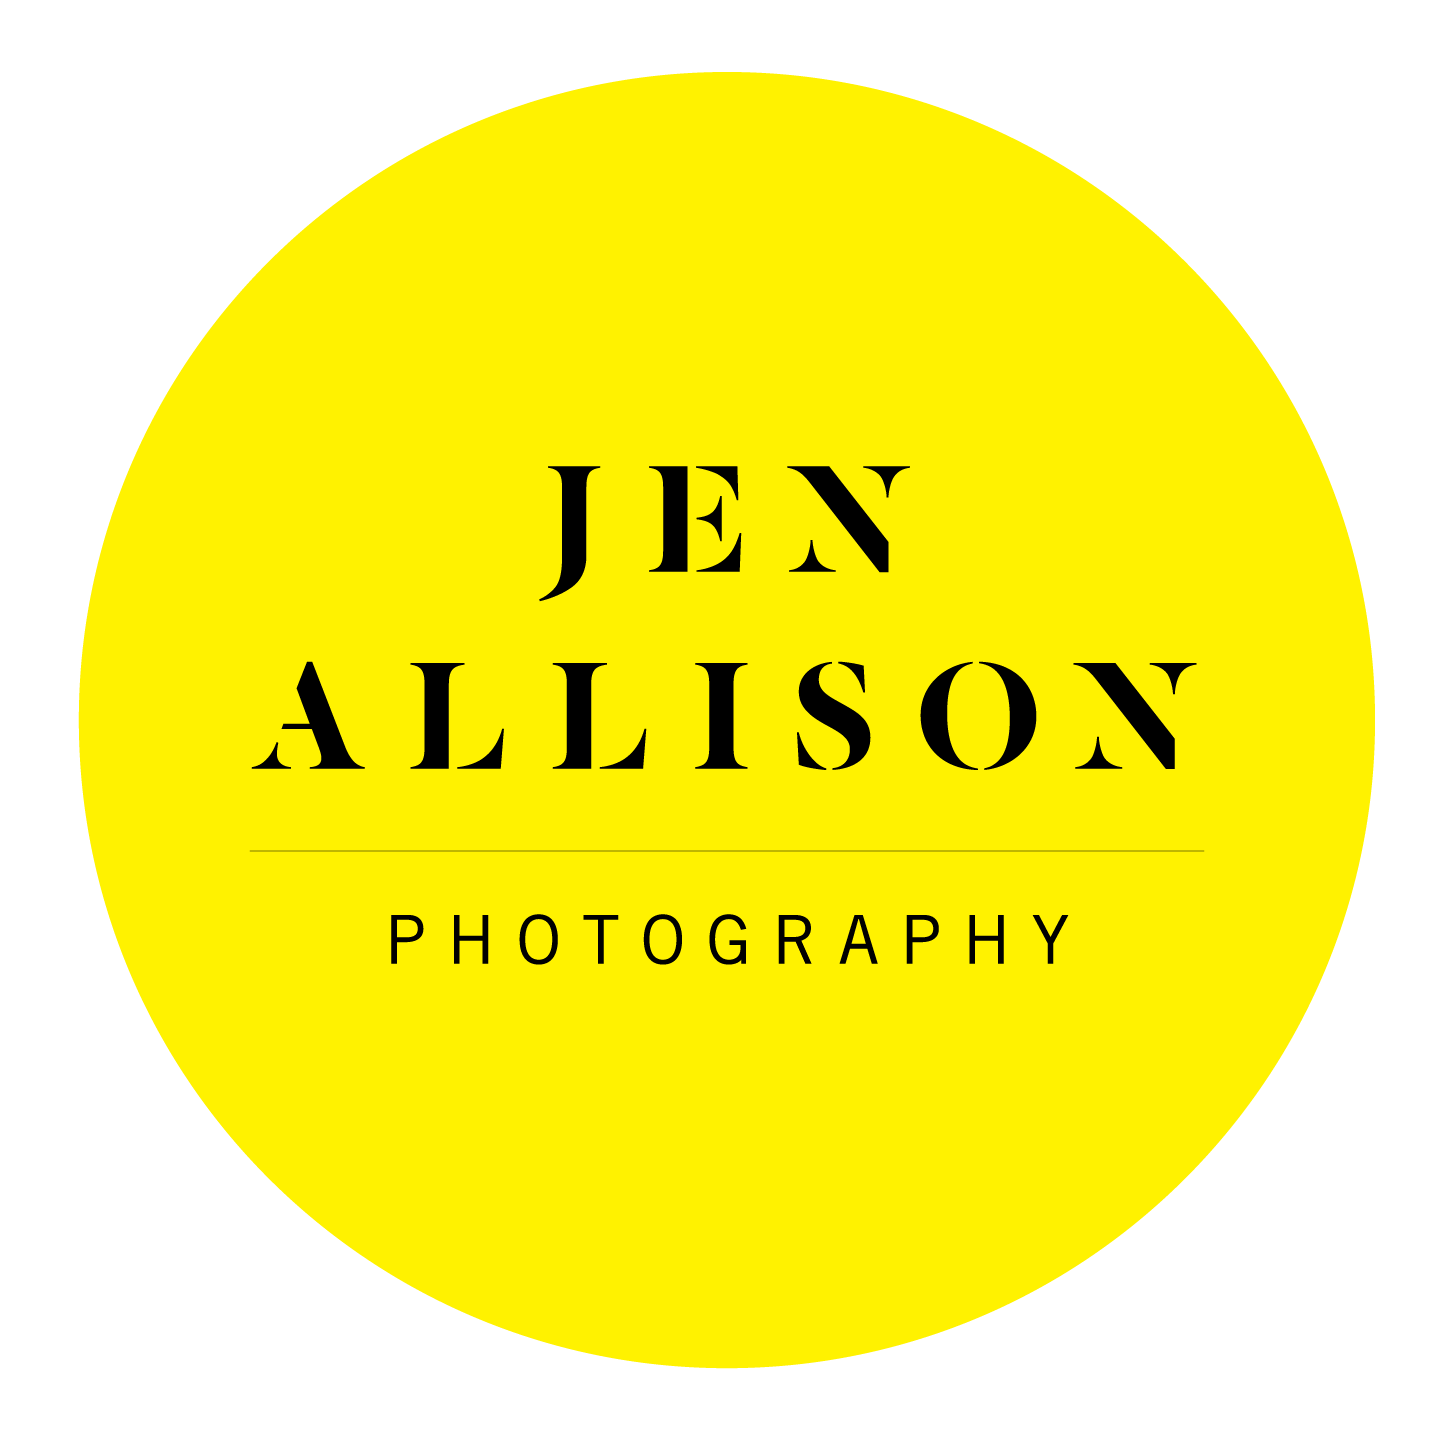 Jen Allison Photography